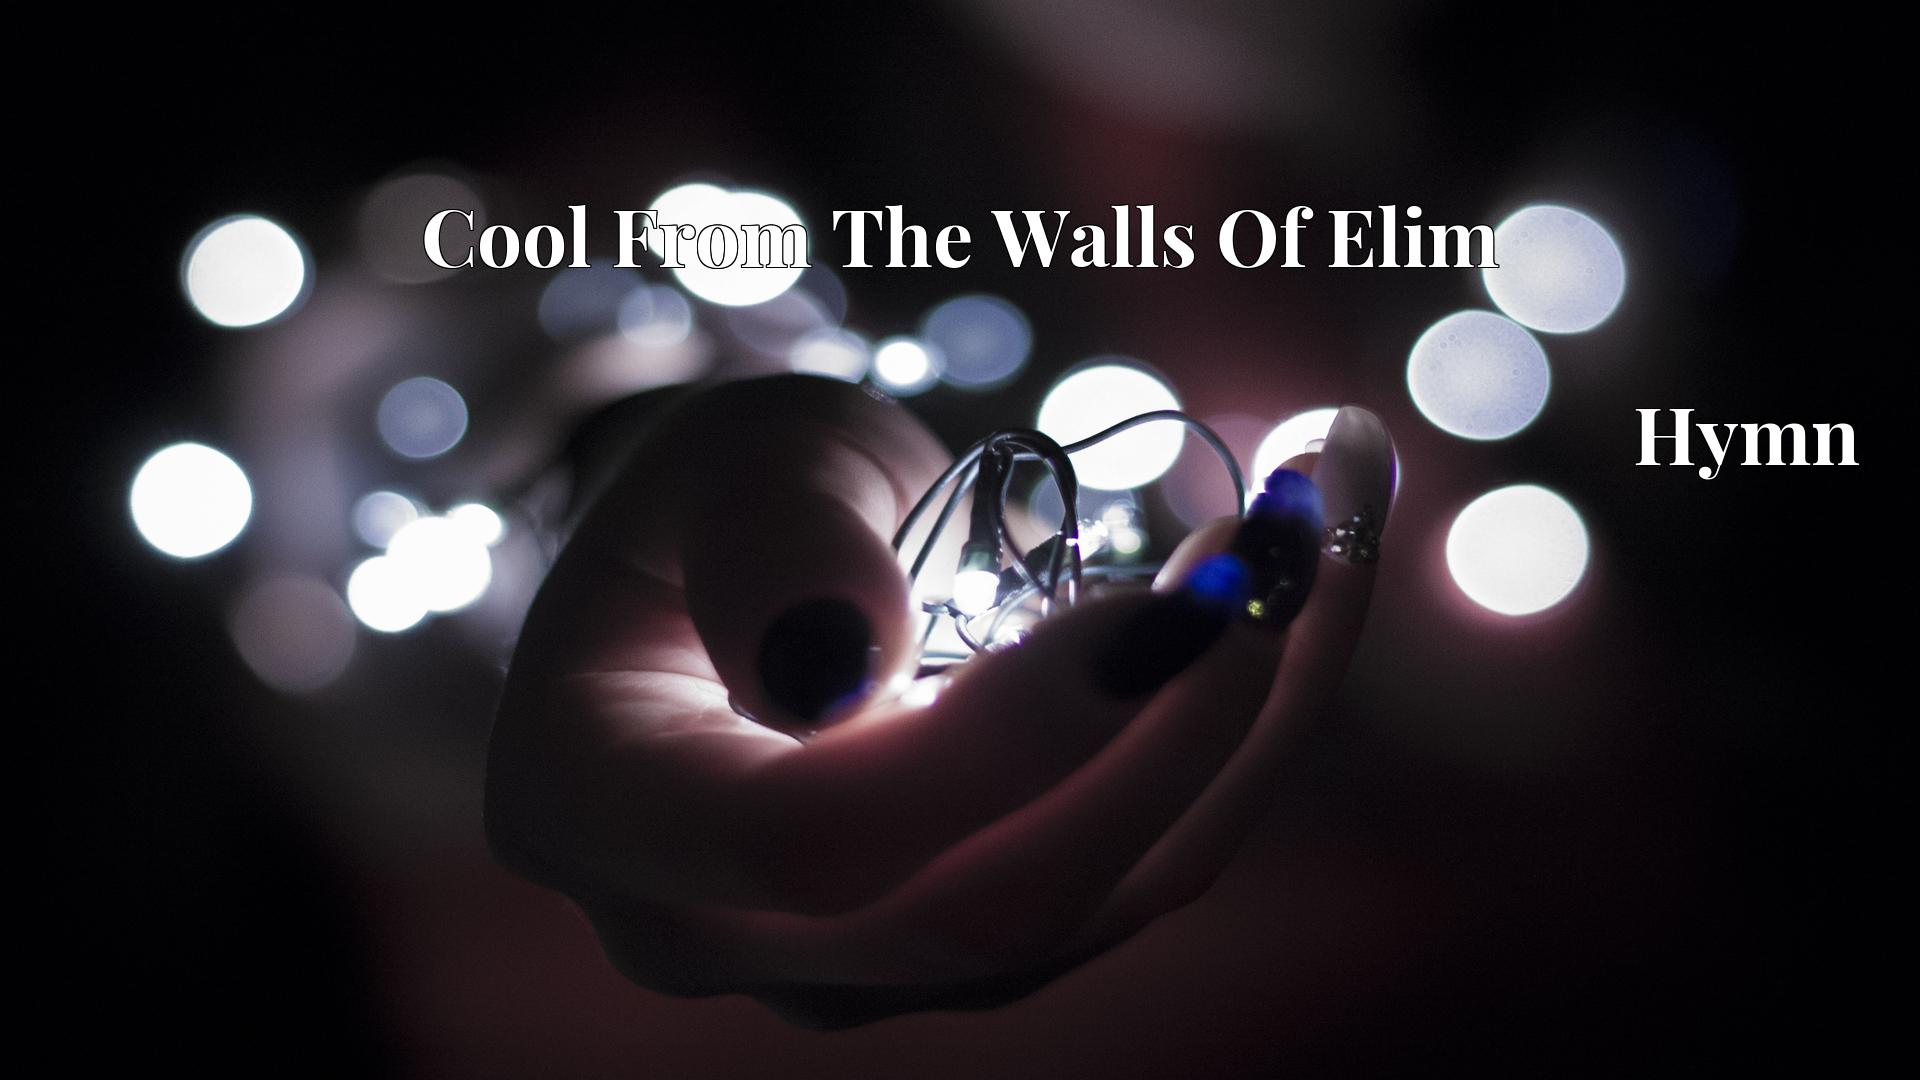 Cool From The Walls Of Elim - Hymn